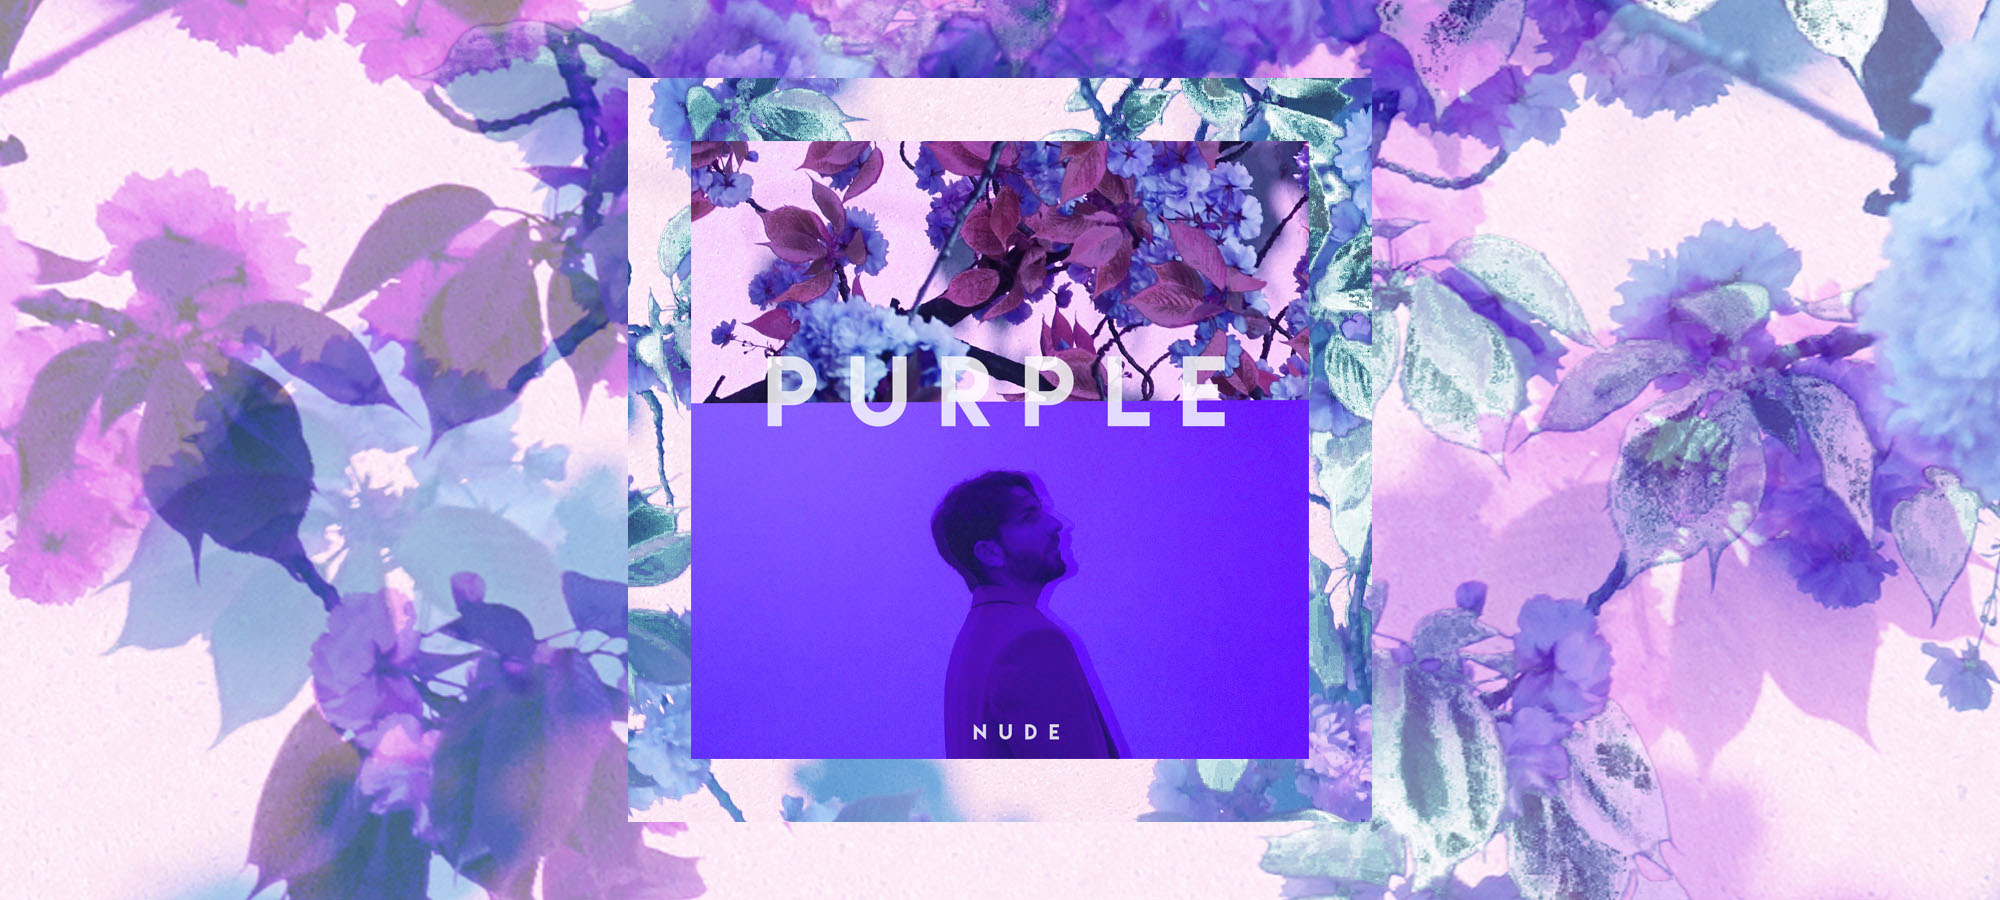 Nude debut album purple - hip hop, r&b and pop electronic music, future bass